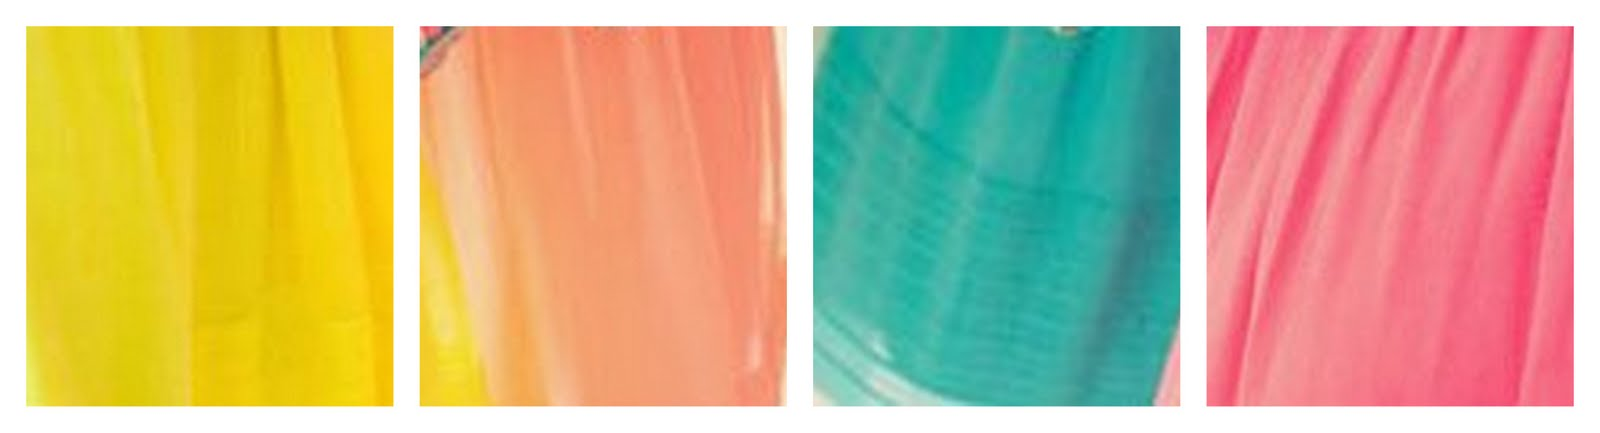 Colour Inspiration Spring Pastels Yellow Coral Teal Pink